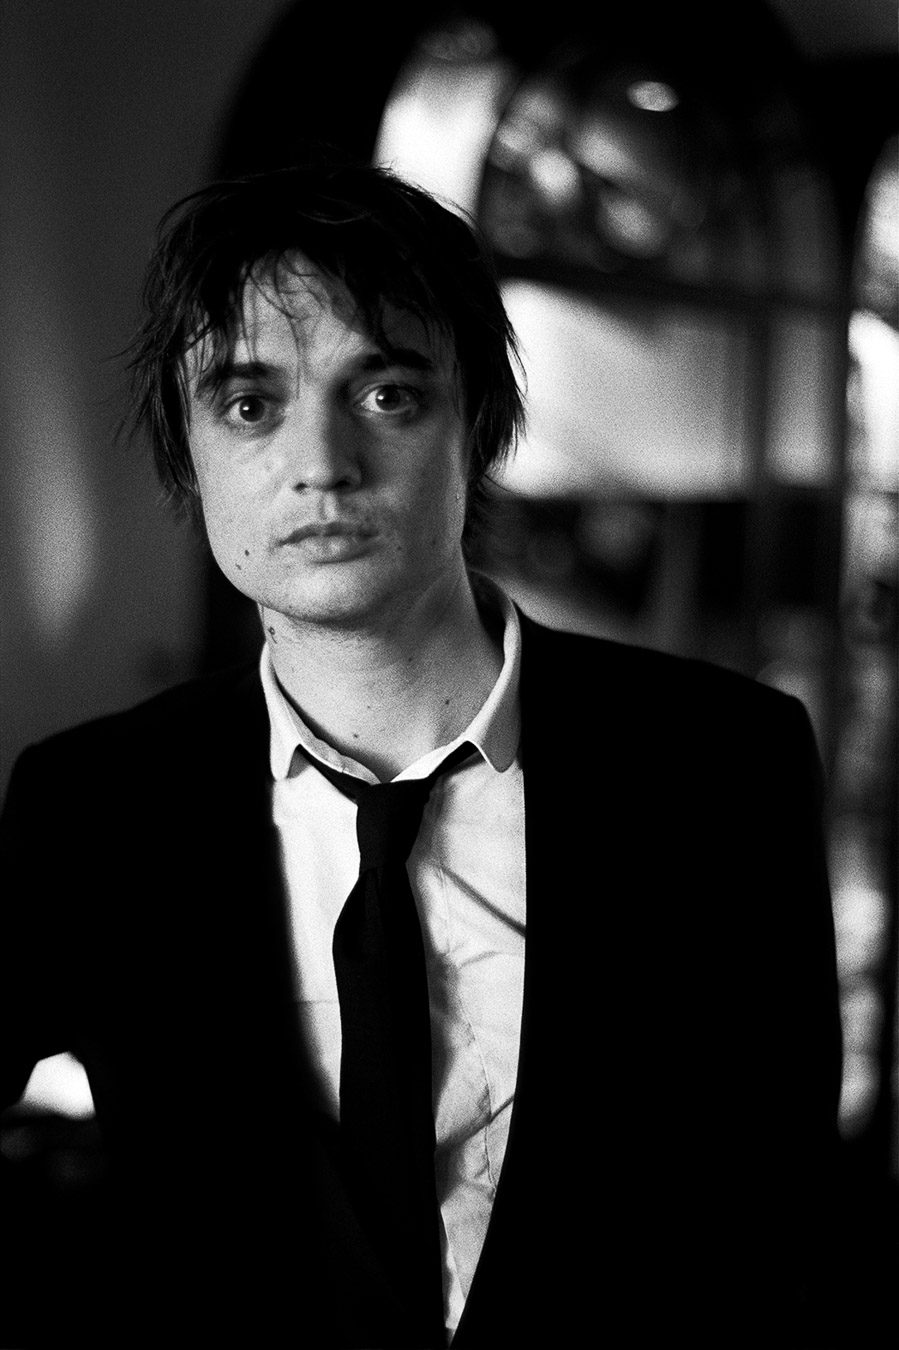 Pete Doherty, Montreux 2008 Hahnemuhle baryta fine art print 100x140cm Edition: No 1/5 Also available: 40x50cm, Edition: 3/10